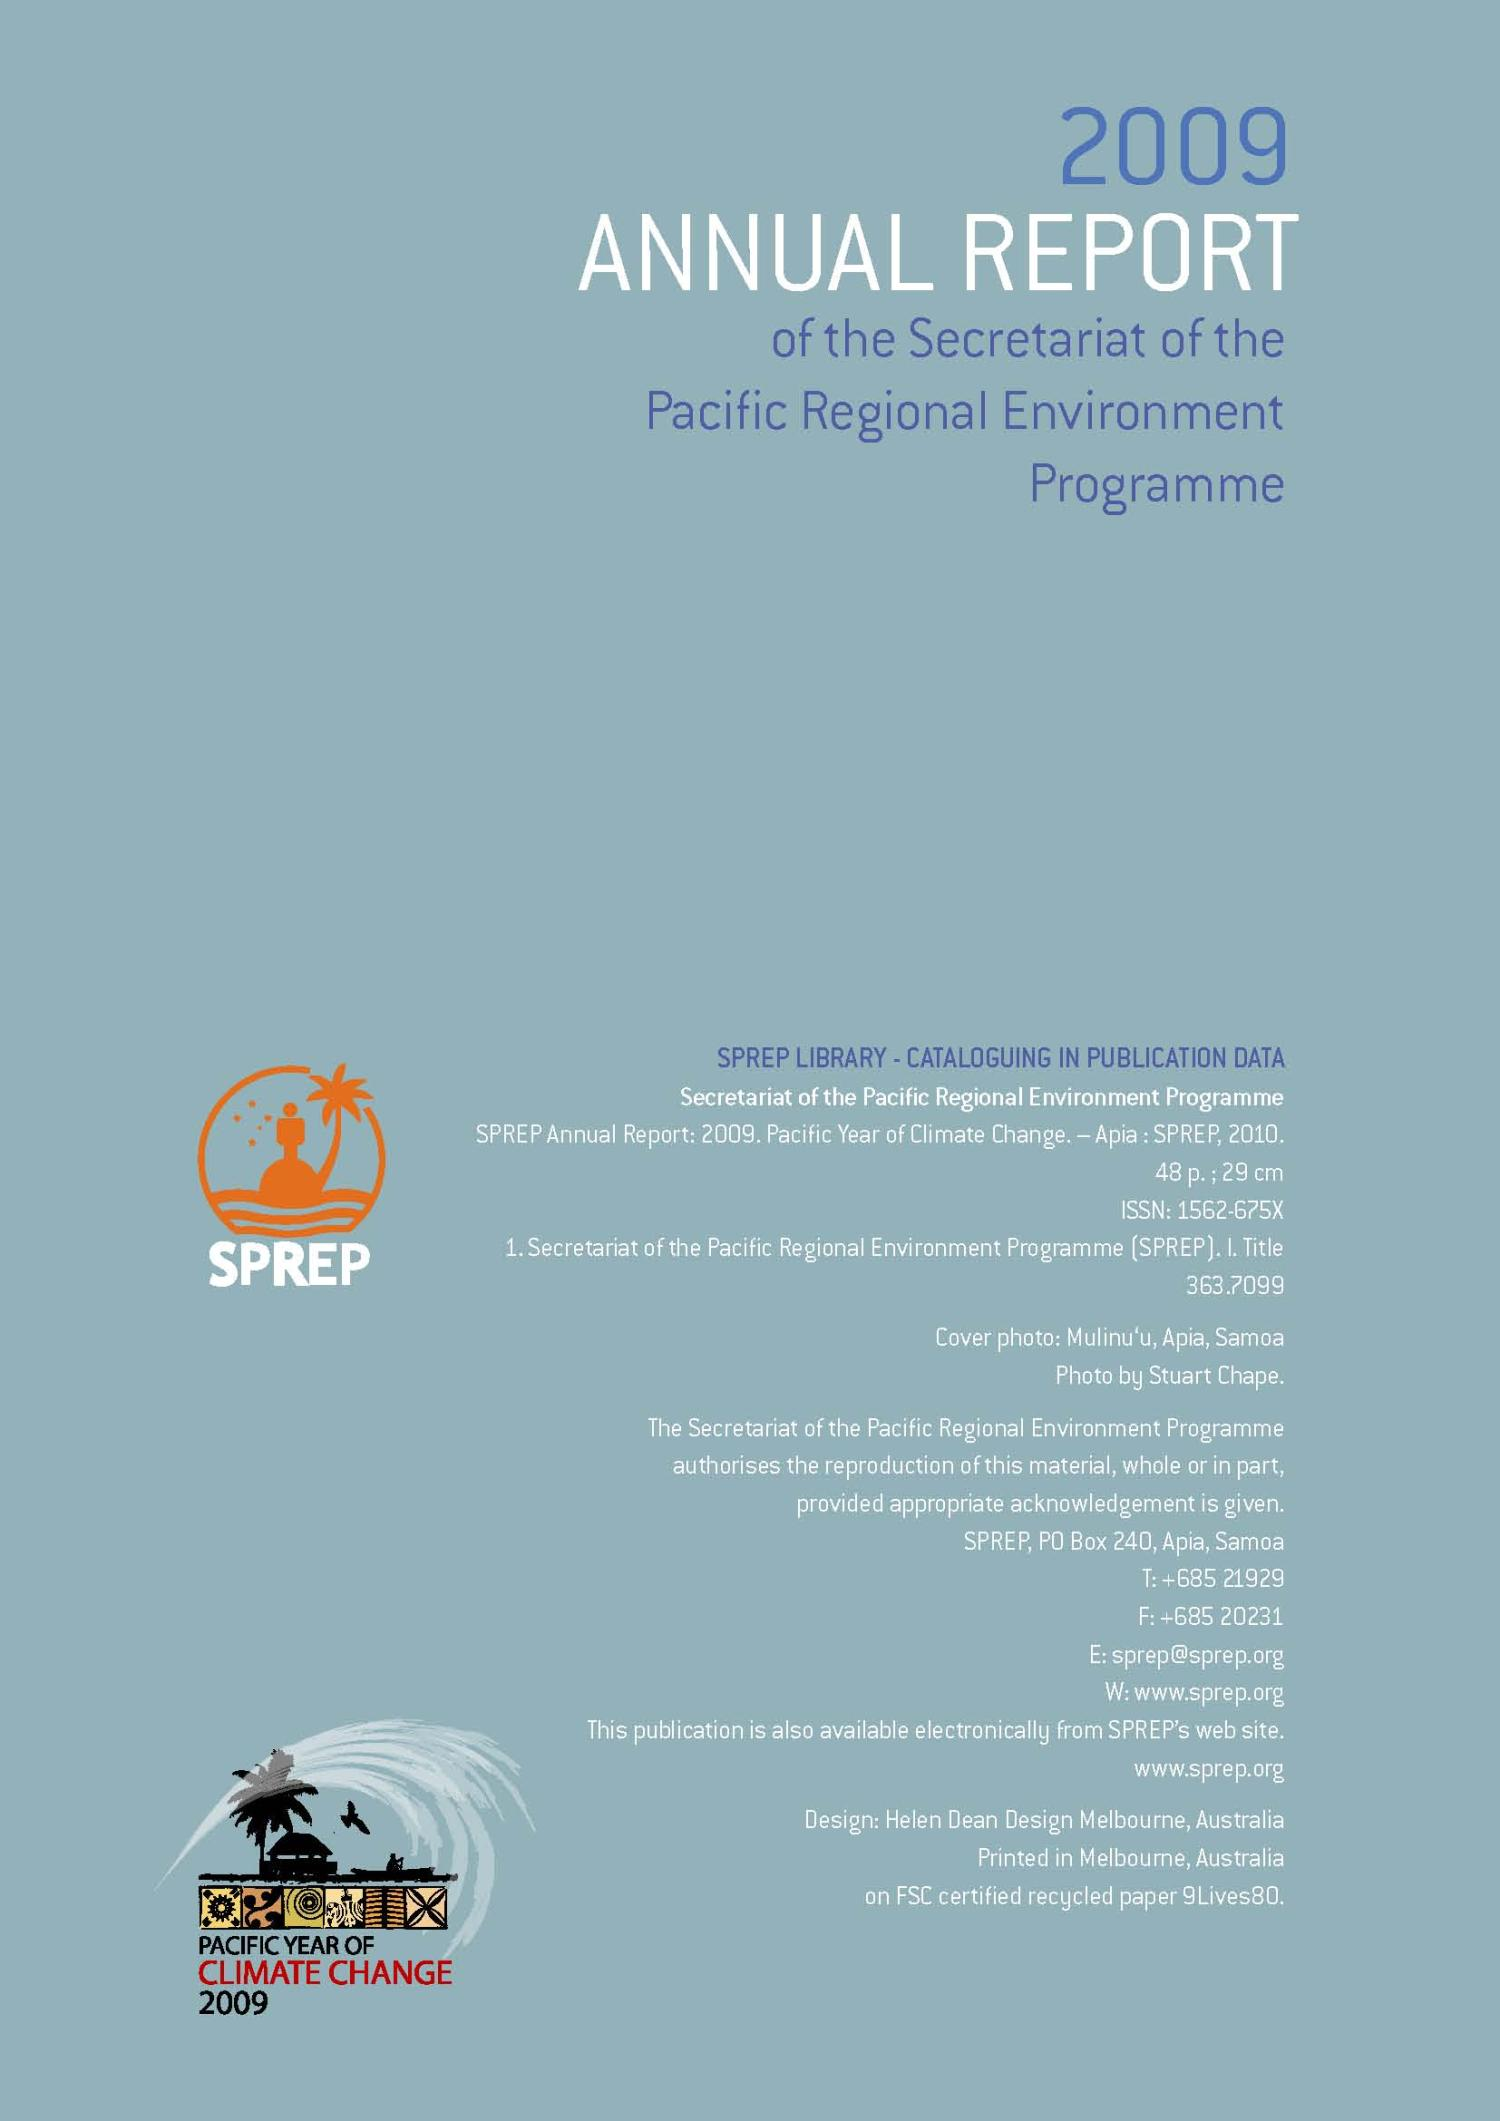 2009 Annual Report of the Secretariat of the Pacific Regional Environment Programme                                                                                                      Back Cover